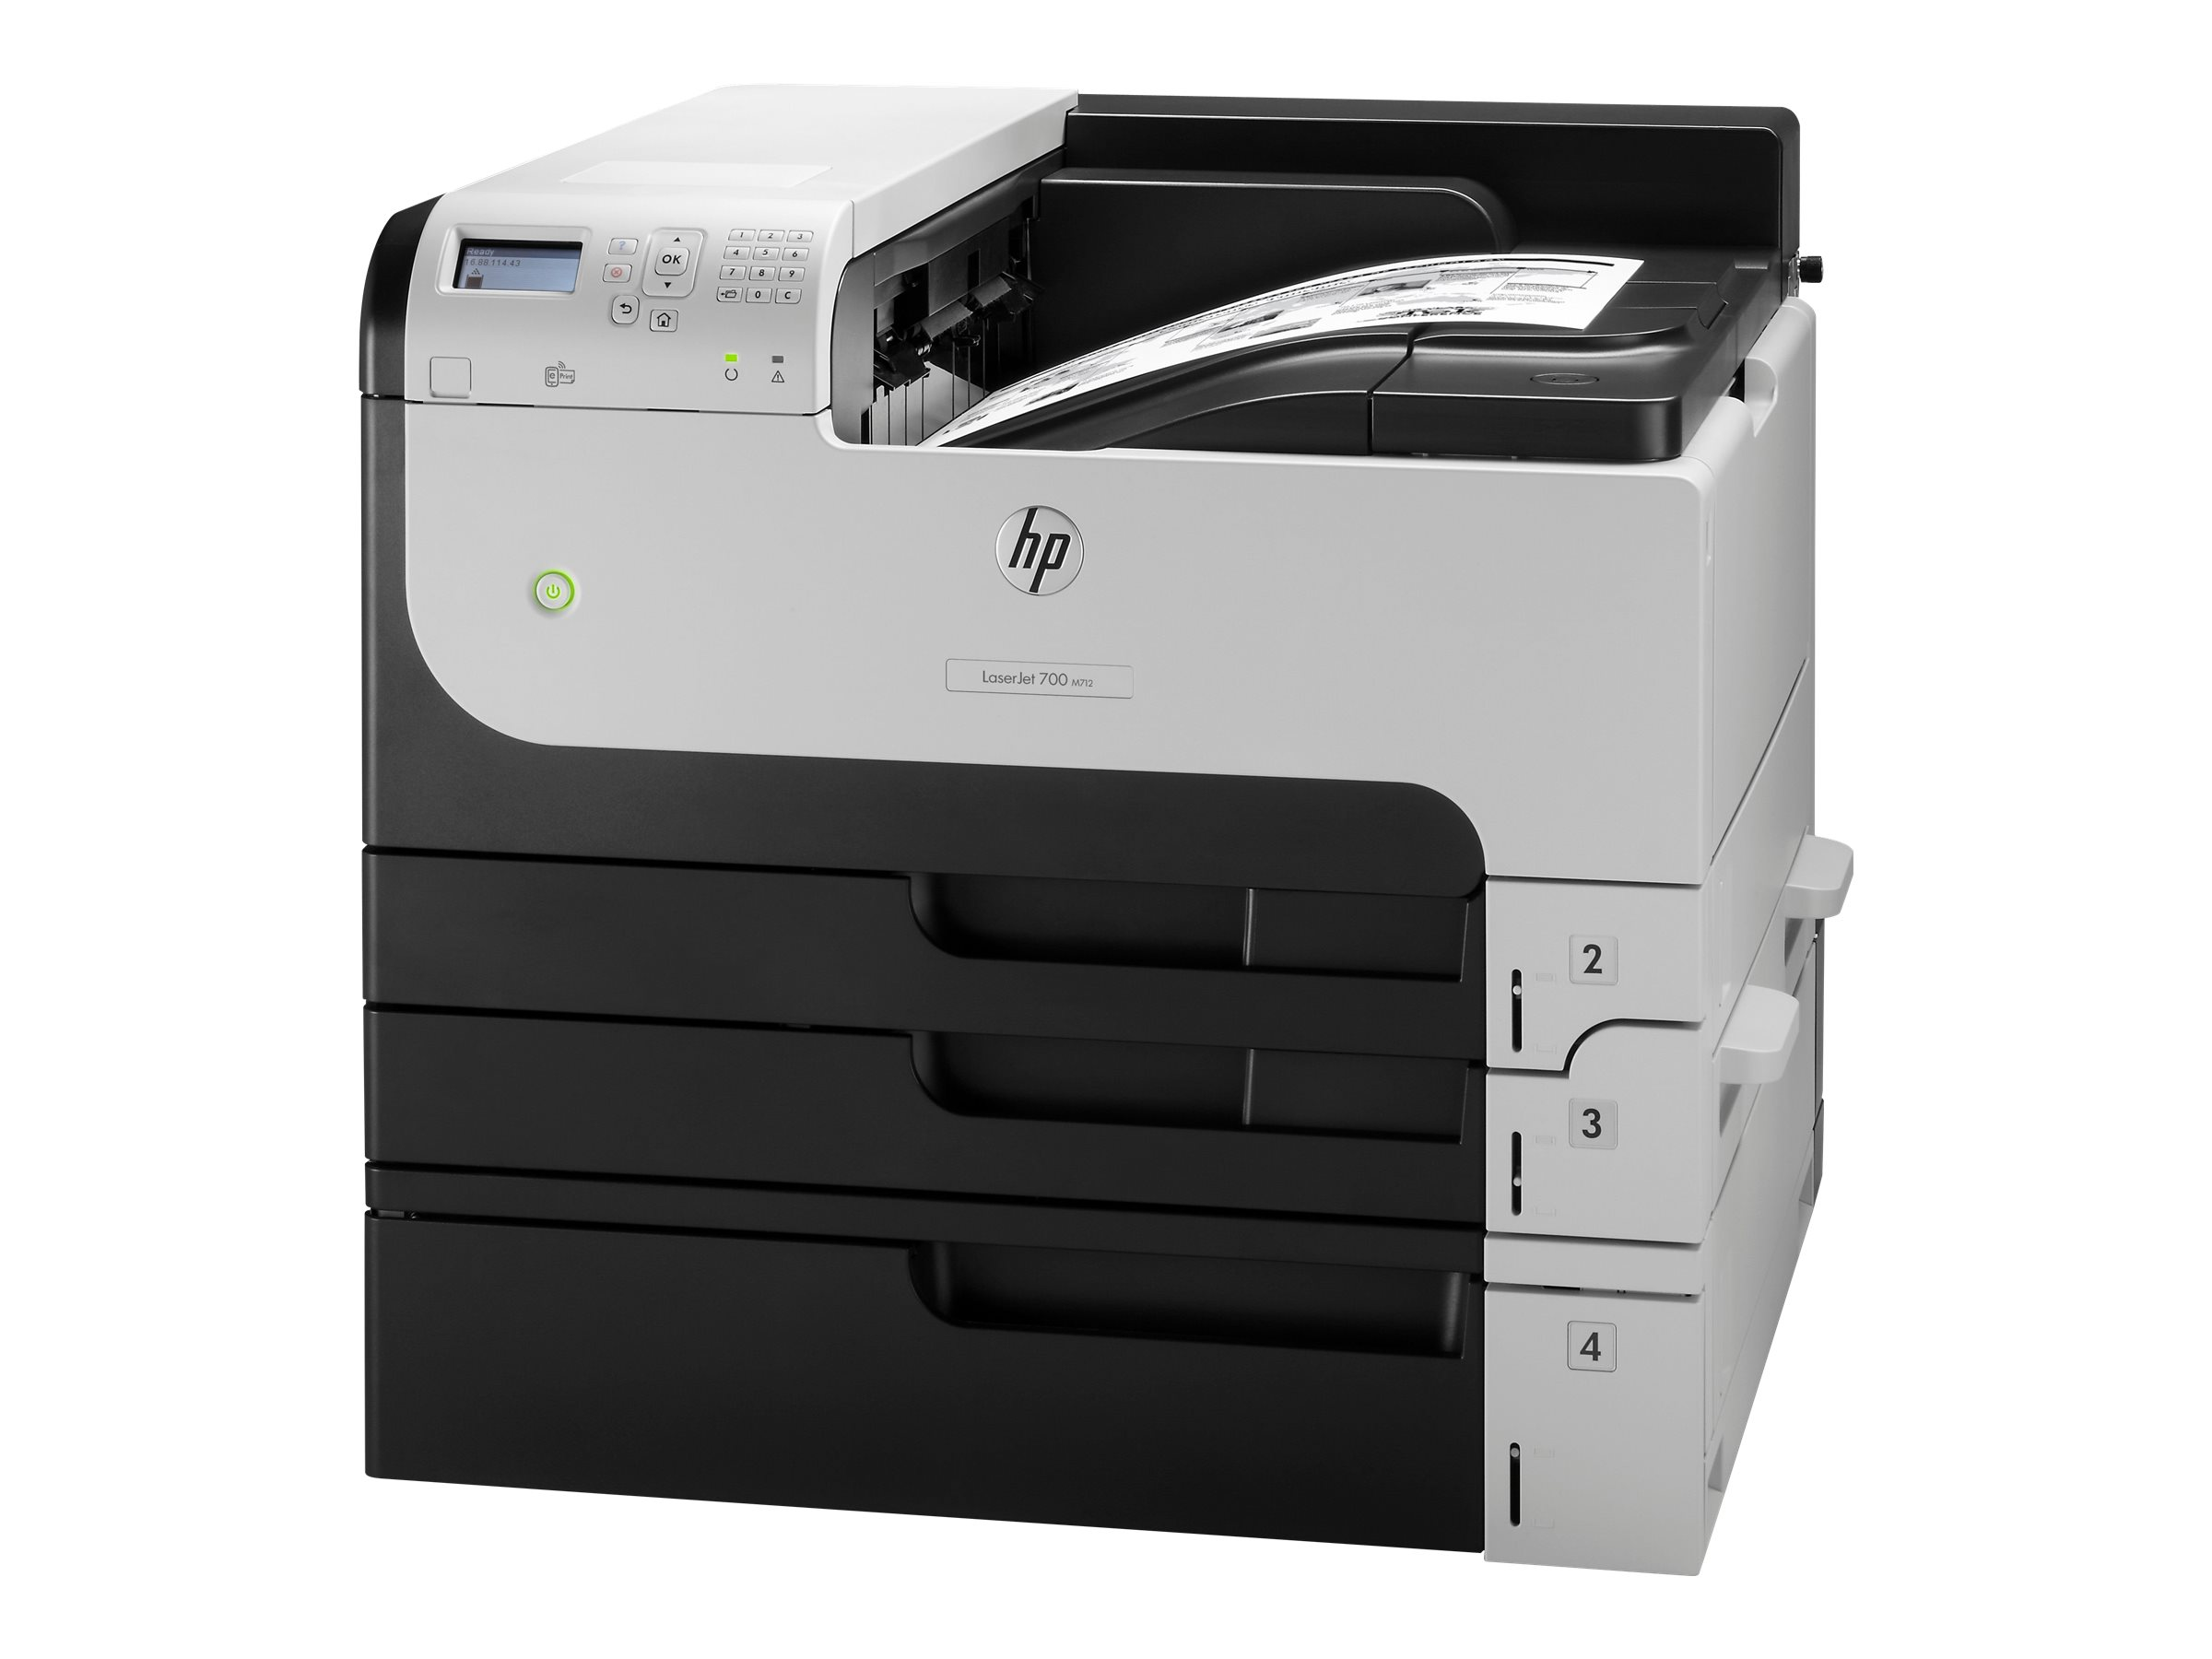 hp laserjet enterprise 700 printer m712xh imprimante. Black Bedroom Furniture Sets. Home Design Ideas